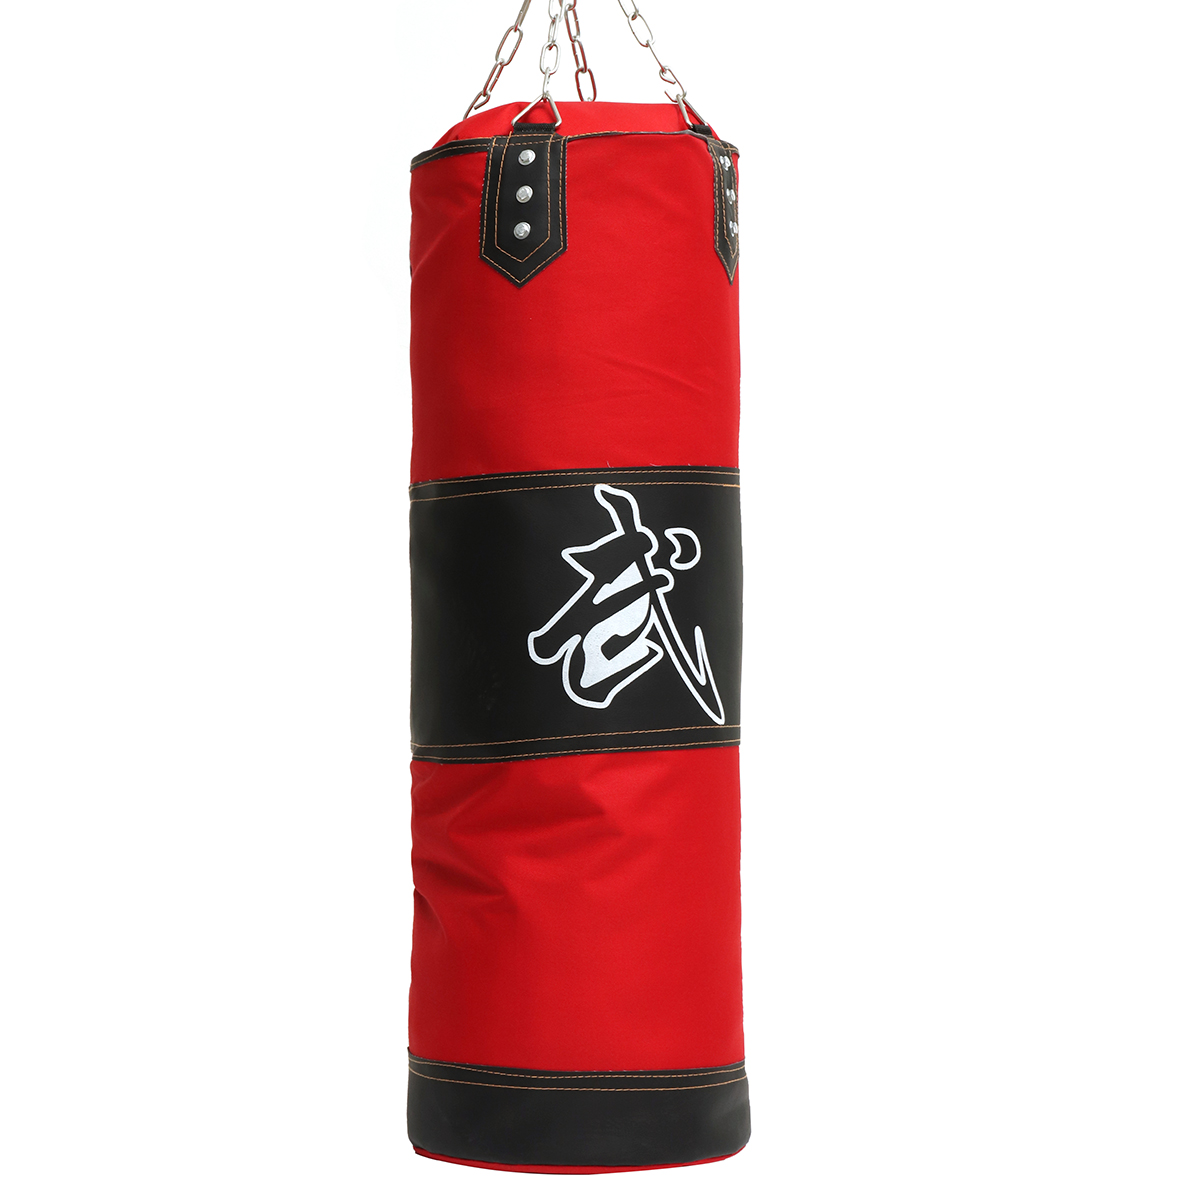 100cm MMA Boxing Training Hook Kick Sandbag Fight Karate Punch P